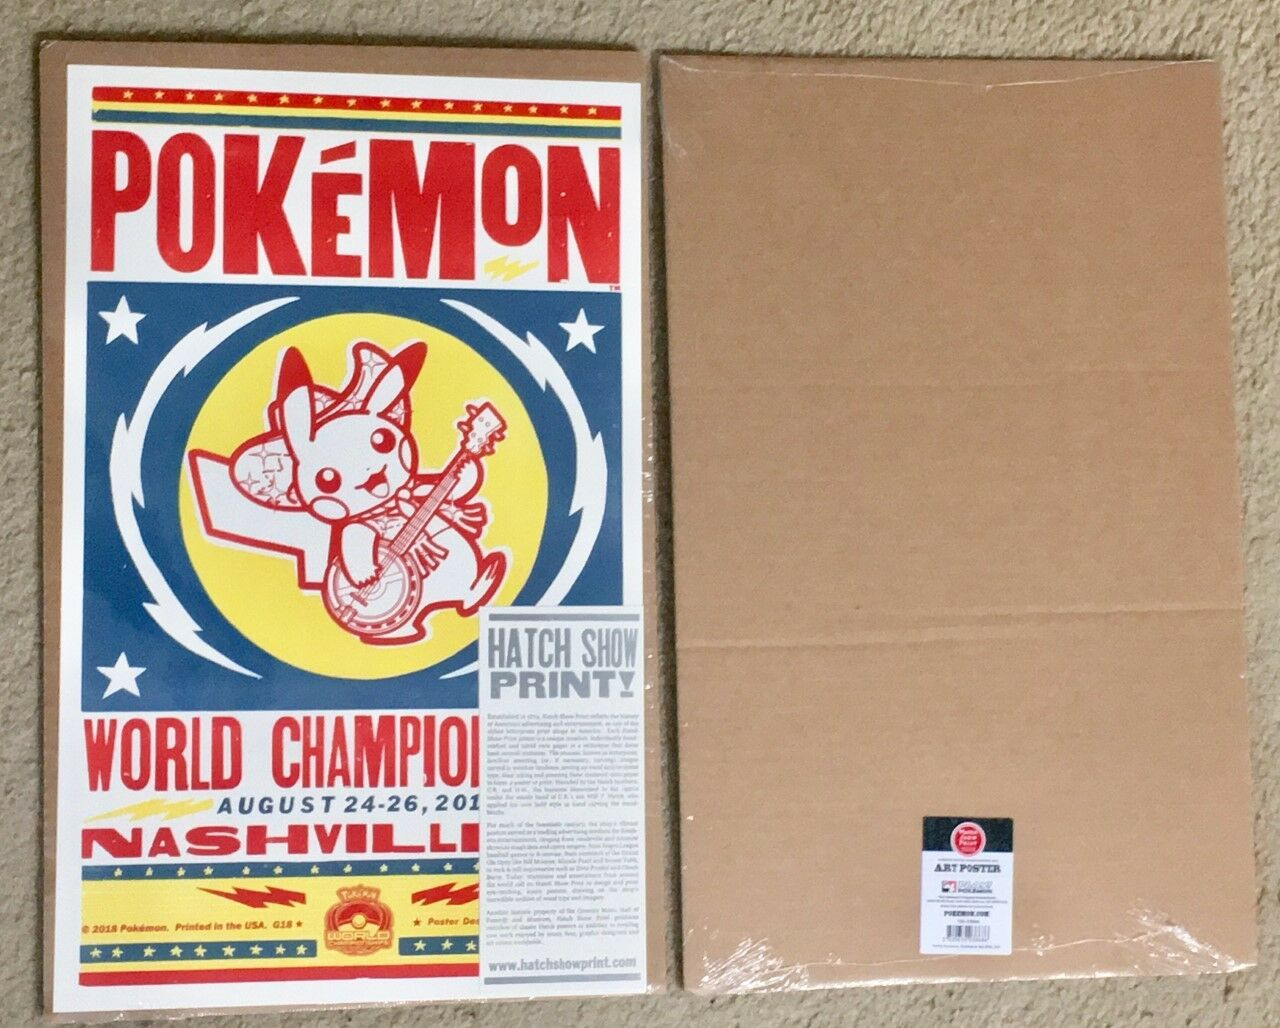 Pokemon Worlds 2018 Nashville Tennessee Hatch Show Print Poster Poster Poster 1 in 500 -SEALED f35982